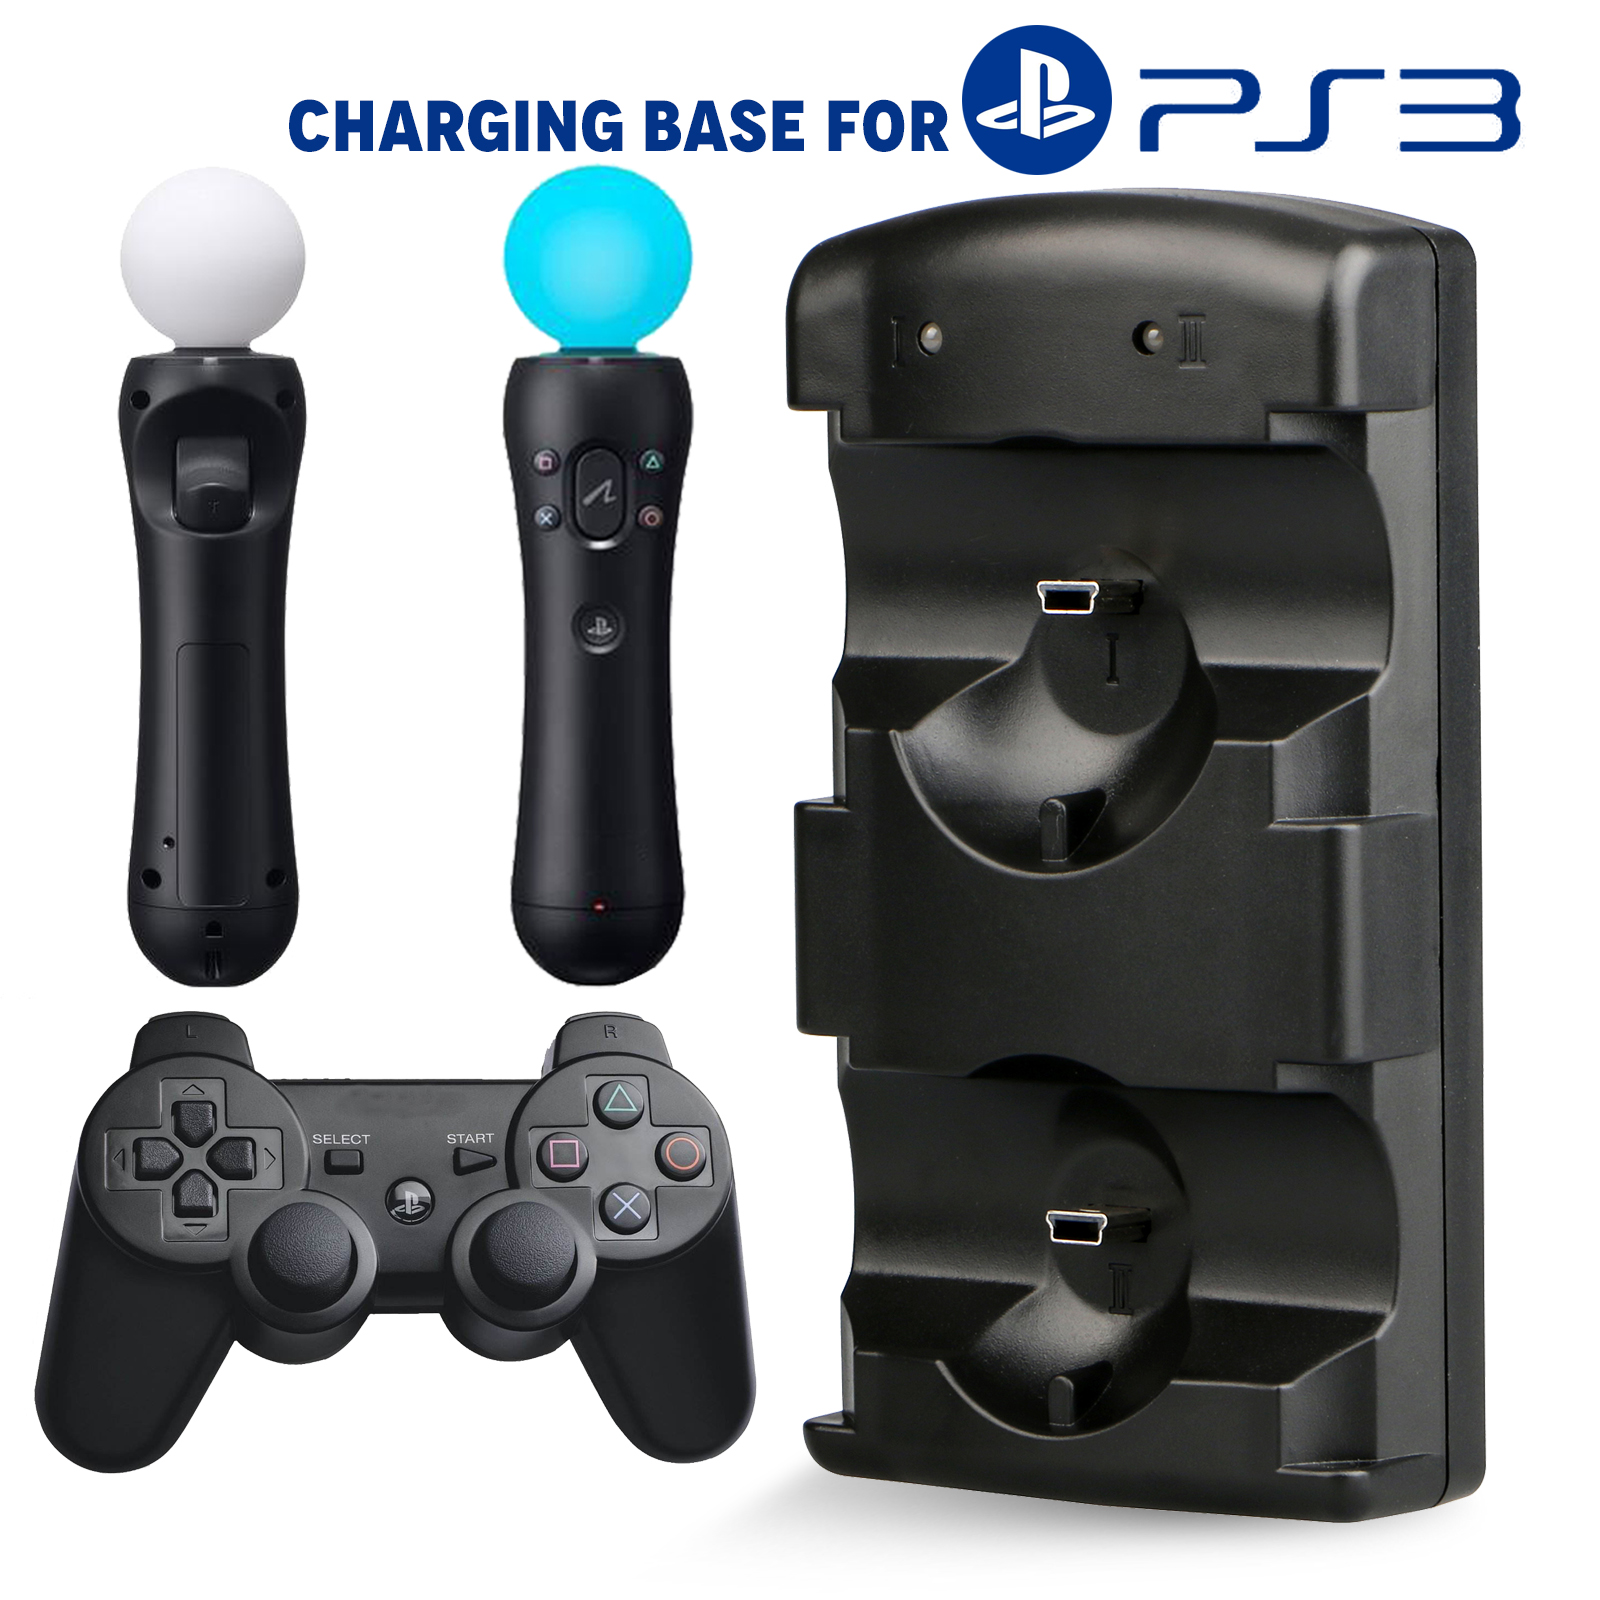 TSV Dual USB Charging Dock Station Charger Stand For Sony Playstation3 PS3 PS Move Controller